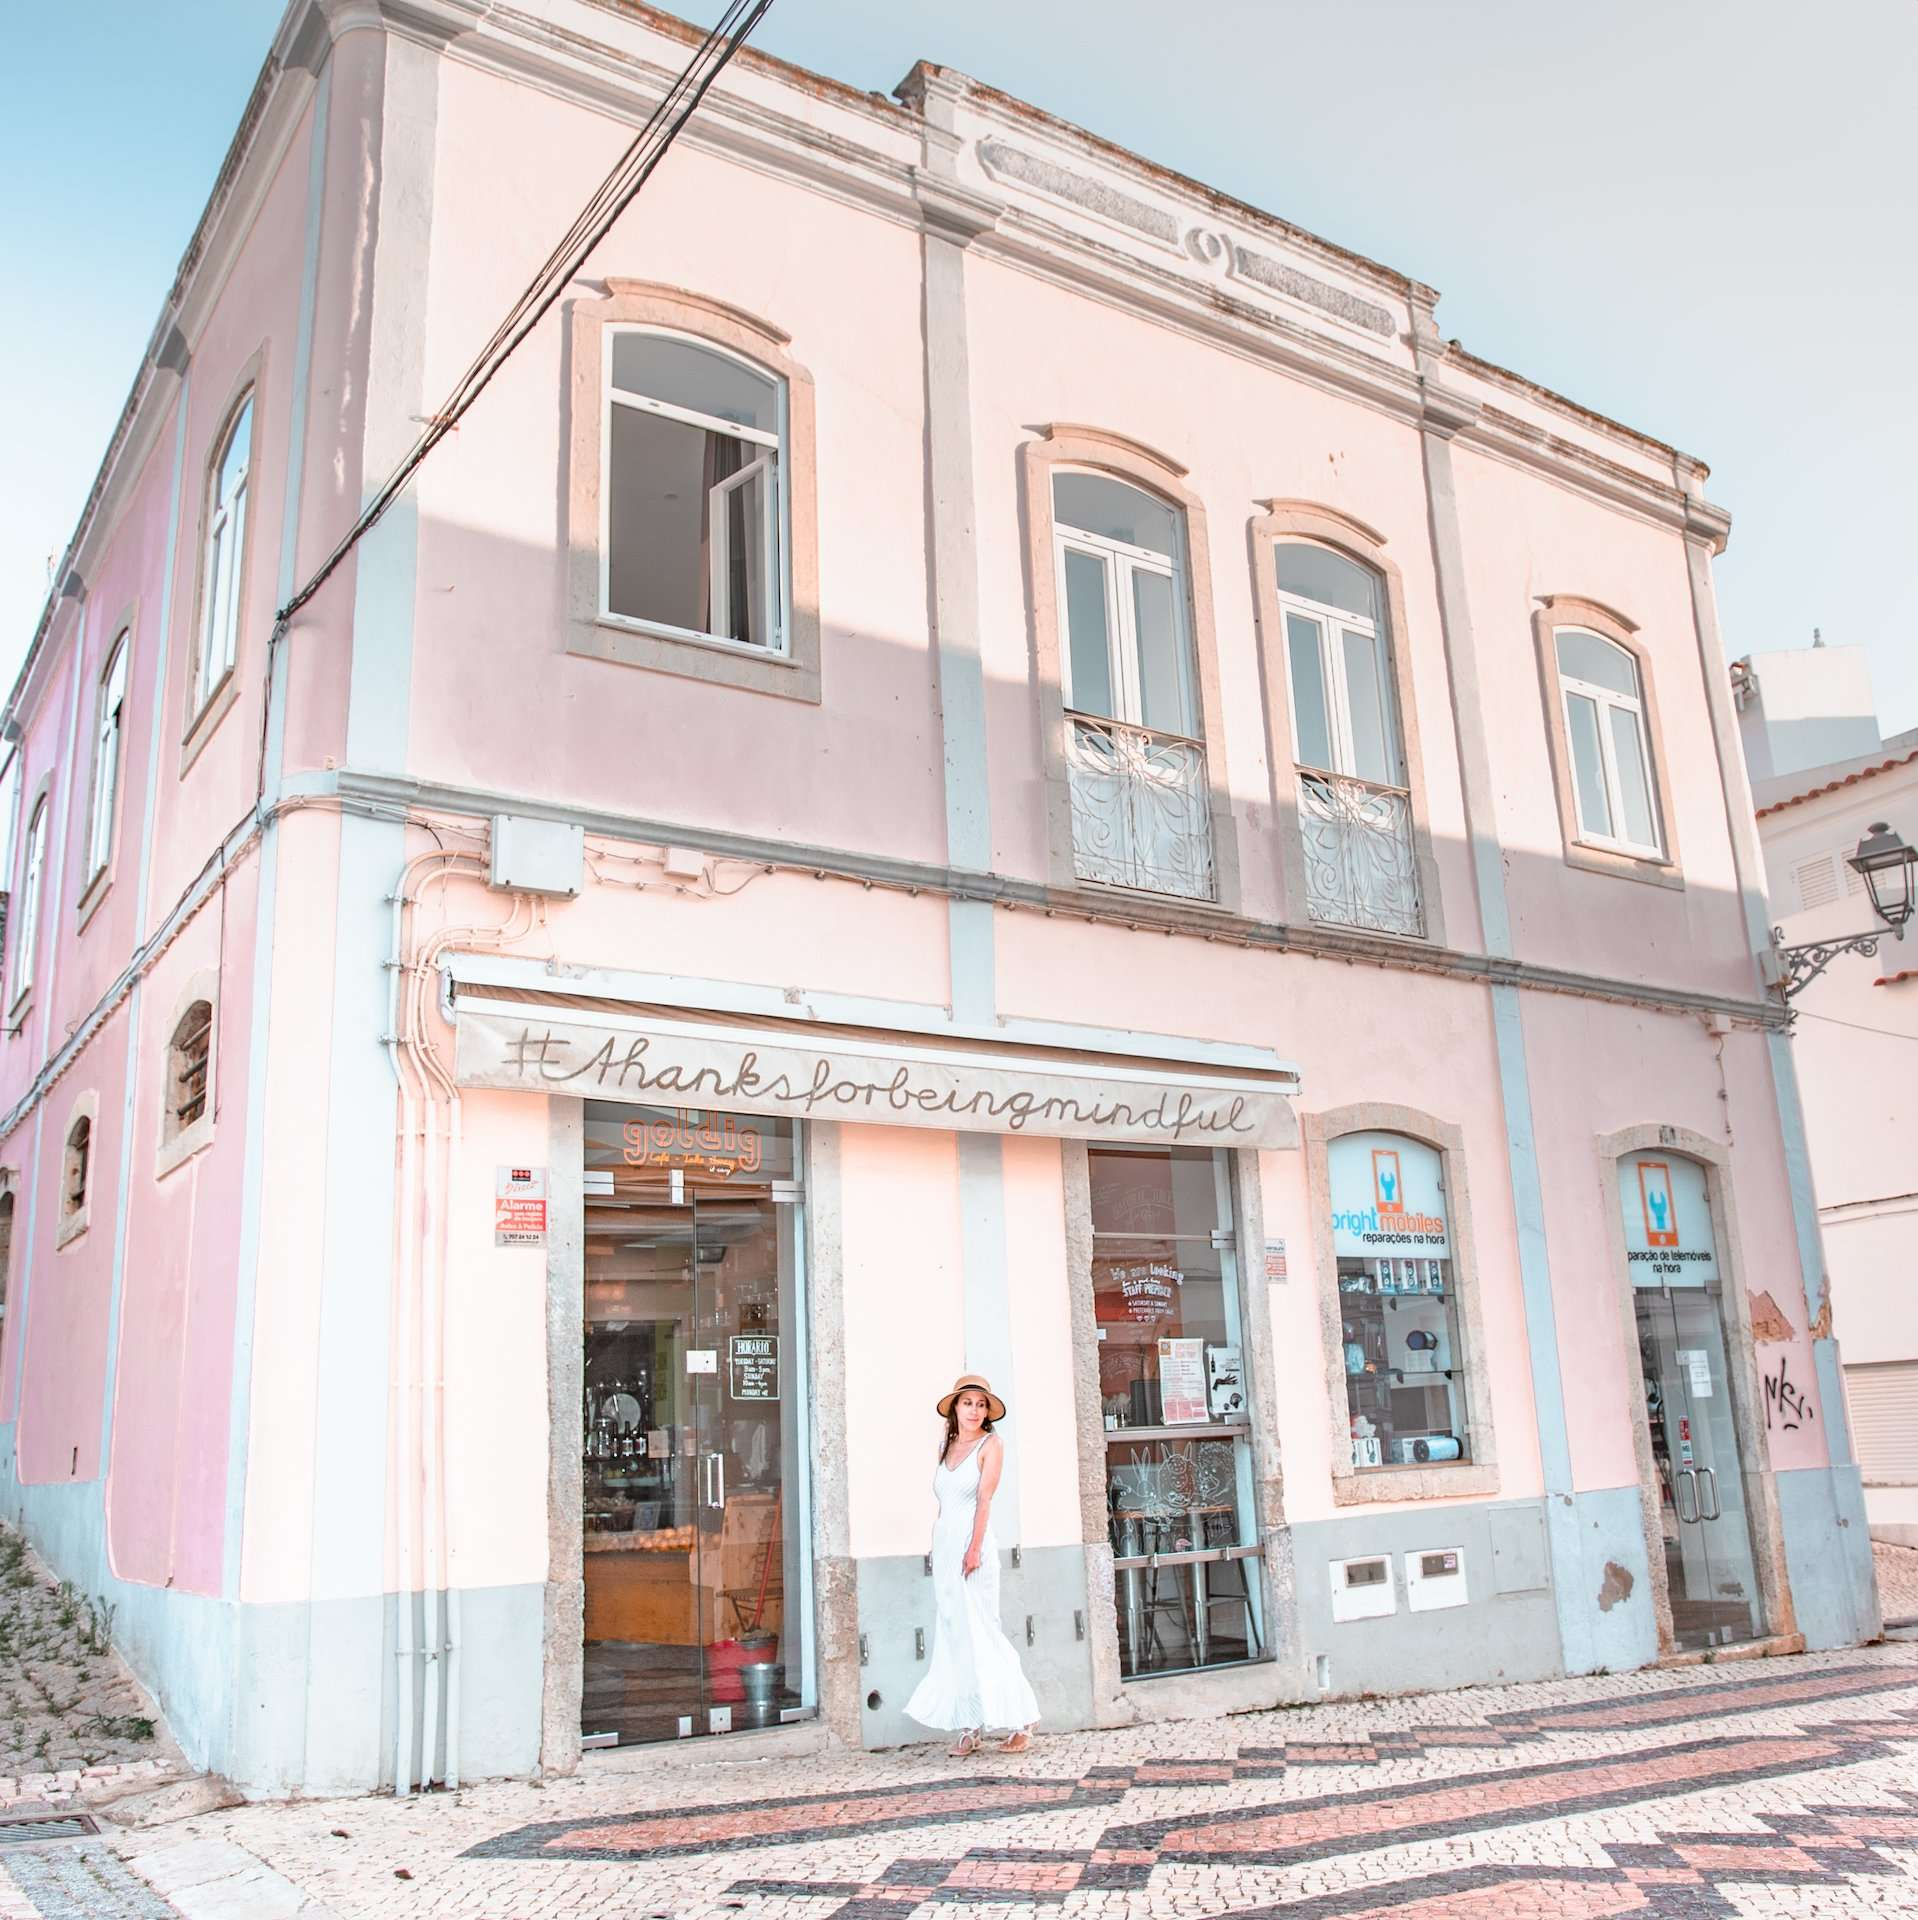 Standing in front of a beautiful pink cafe in Lagos, Portugal